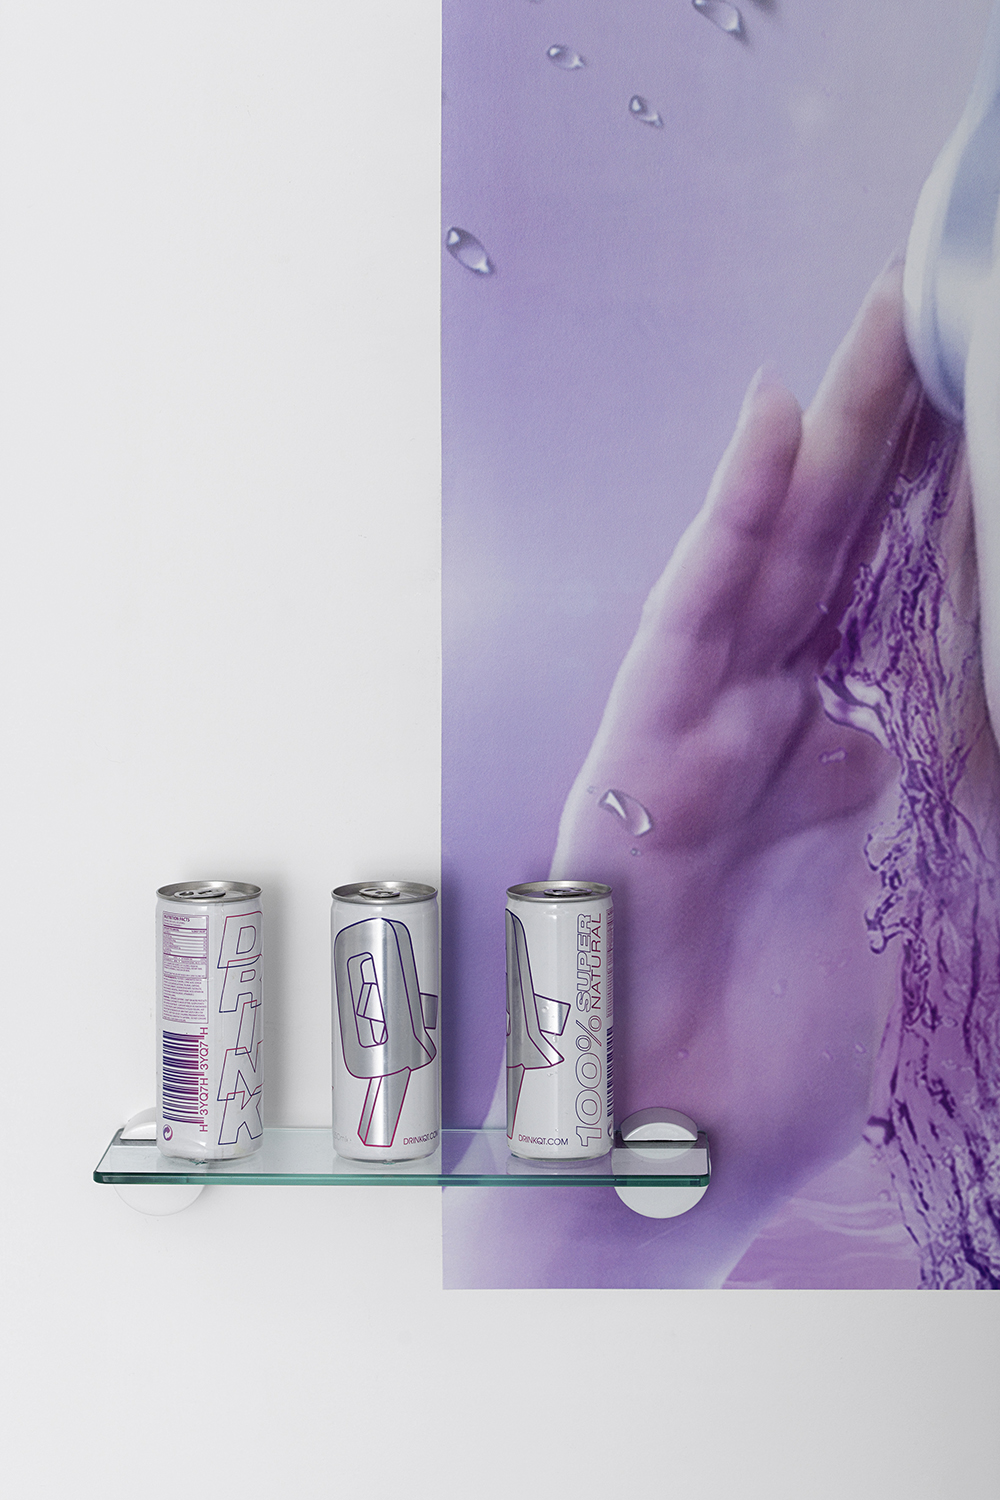 DrinkQT (detail), QT, 2015, visual : Bradley   Pablo, Energy drink cans, atex inkjet on pre-glued paper, variable dimensions — Galerie Éric Hussenot, Paris